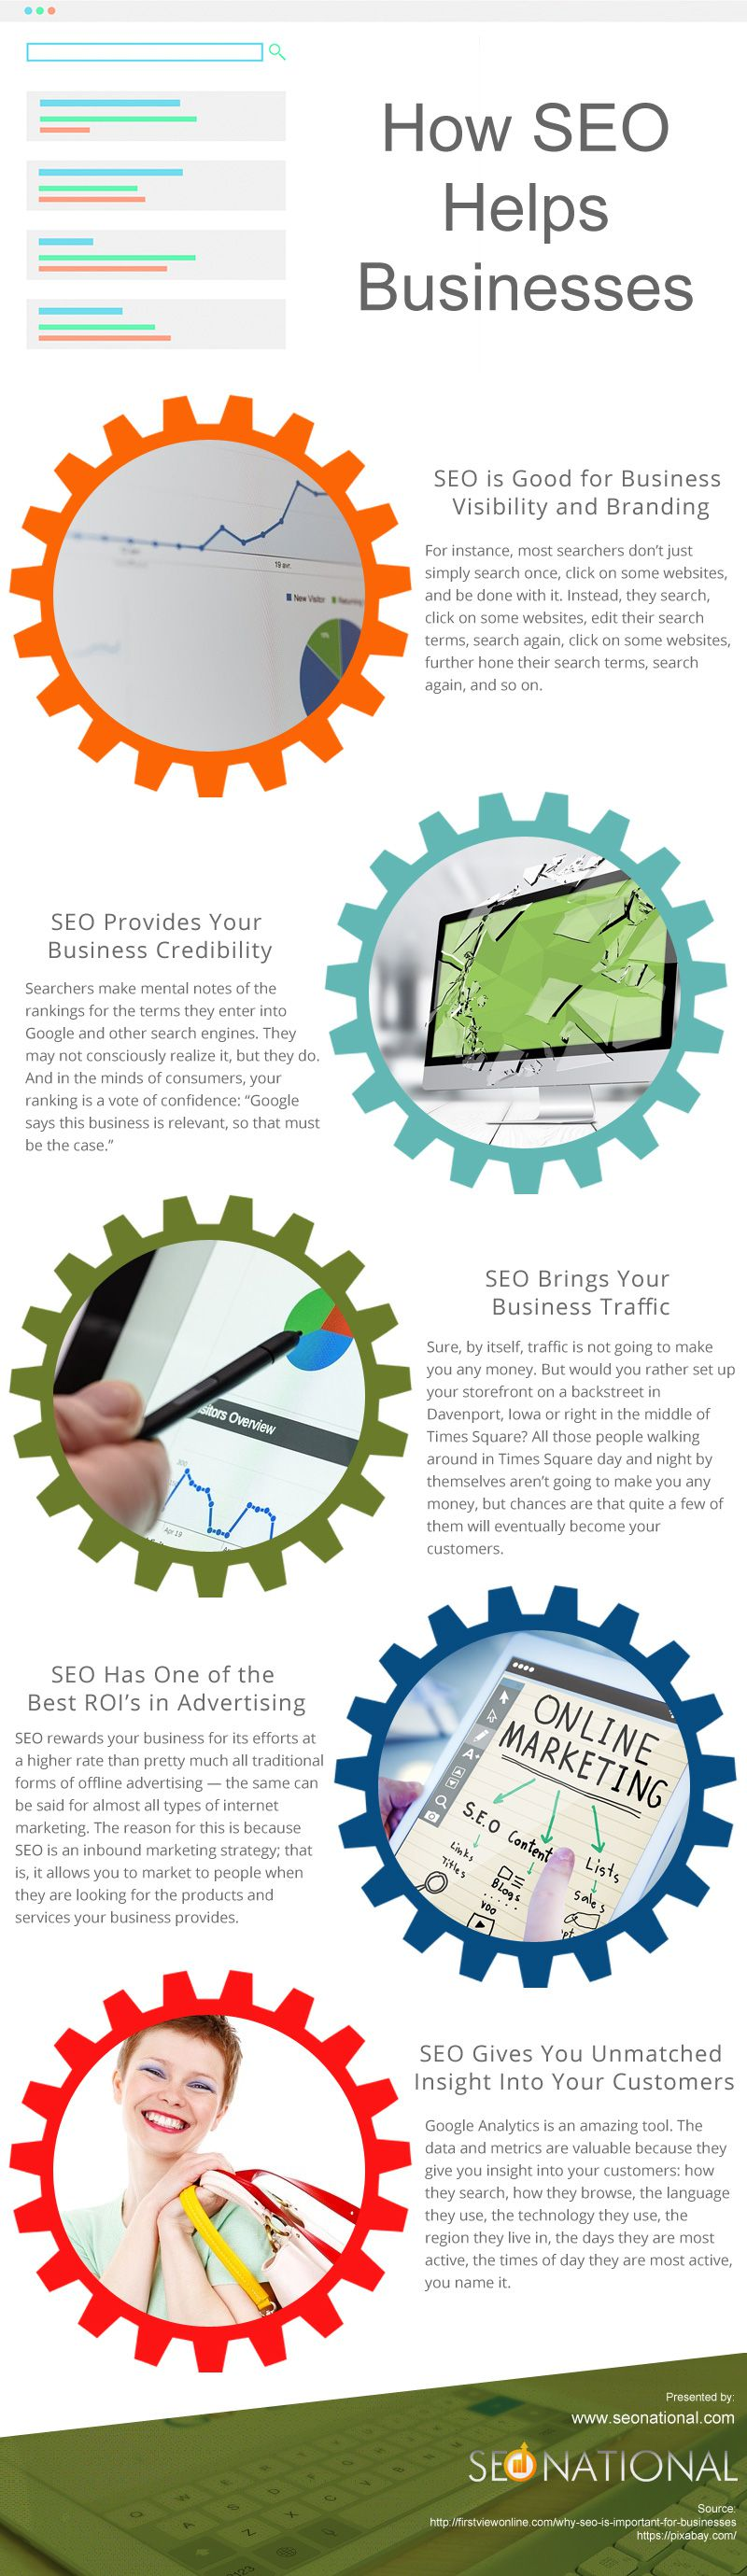 How SEO Helps Businesses